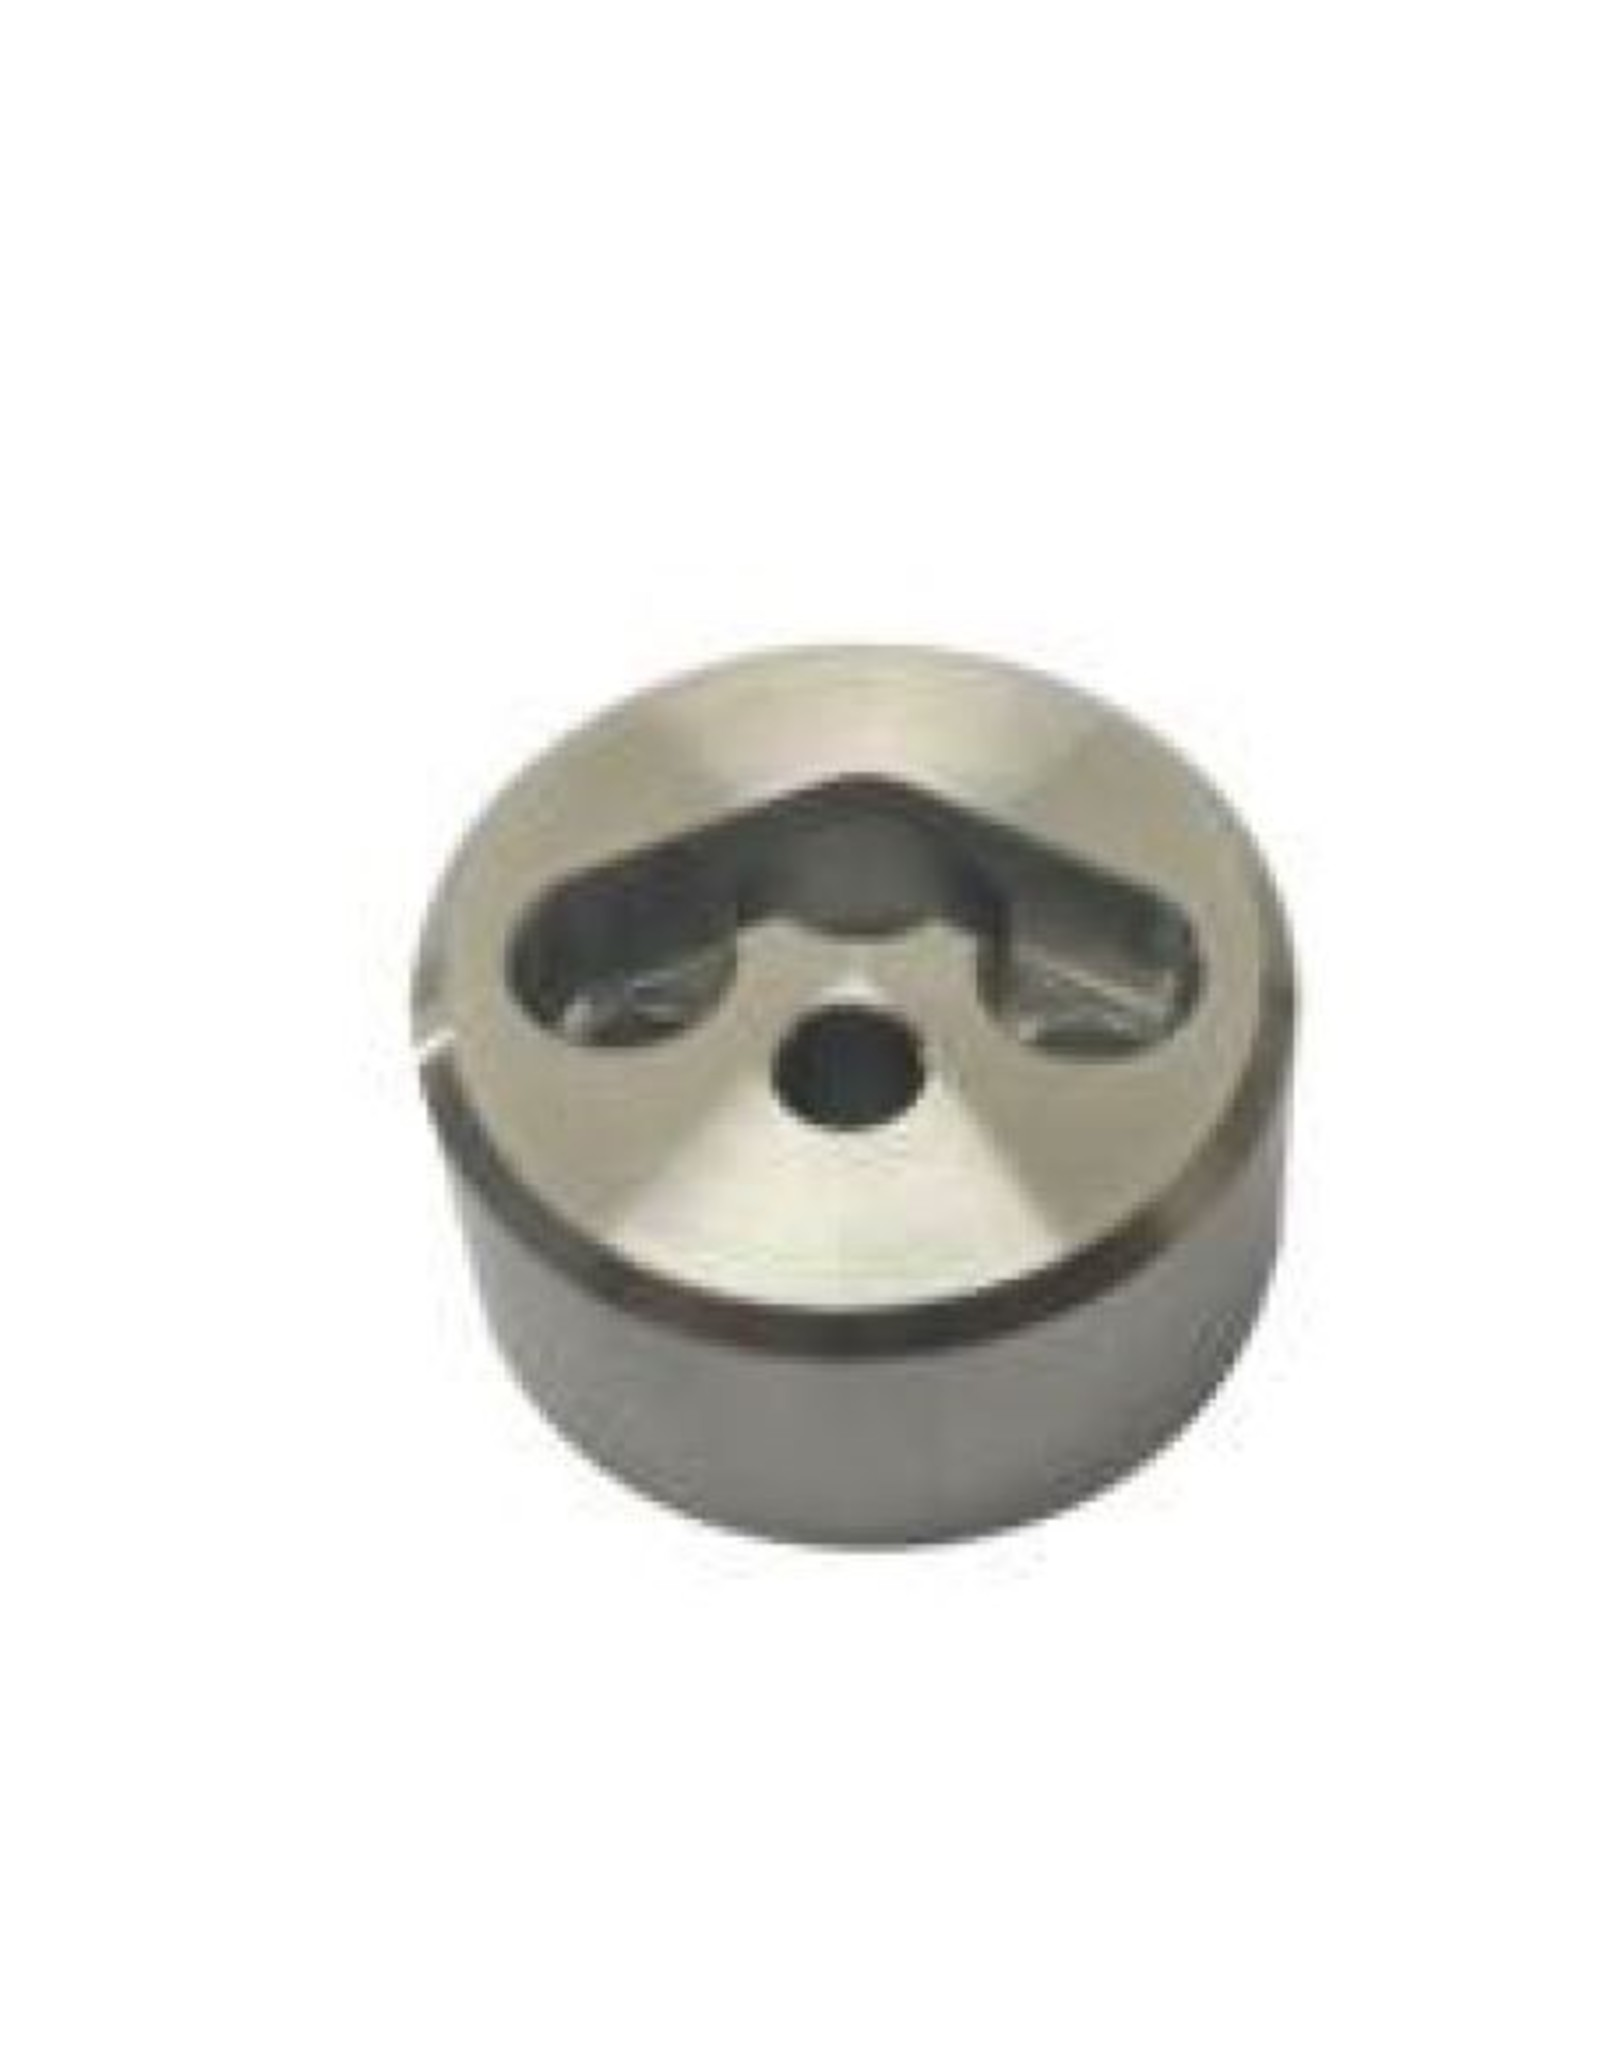 OMAX Style Check Valve Retainer (Cylinder Side)